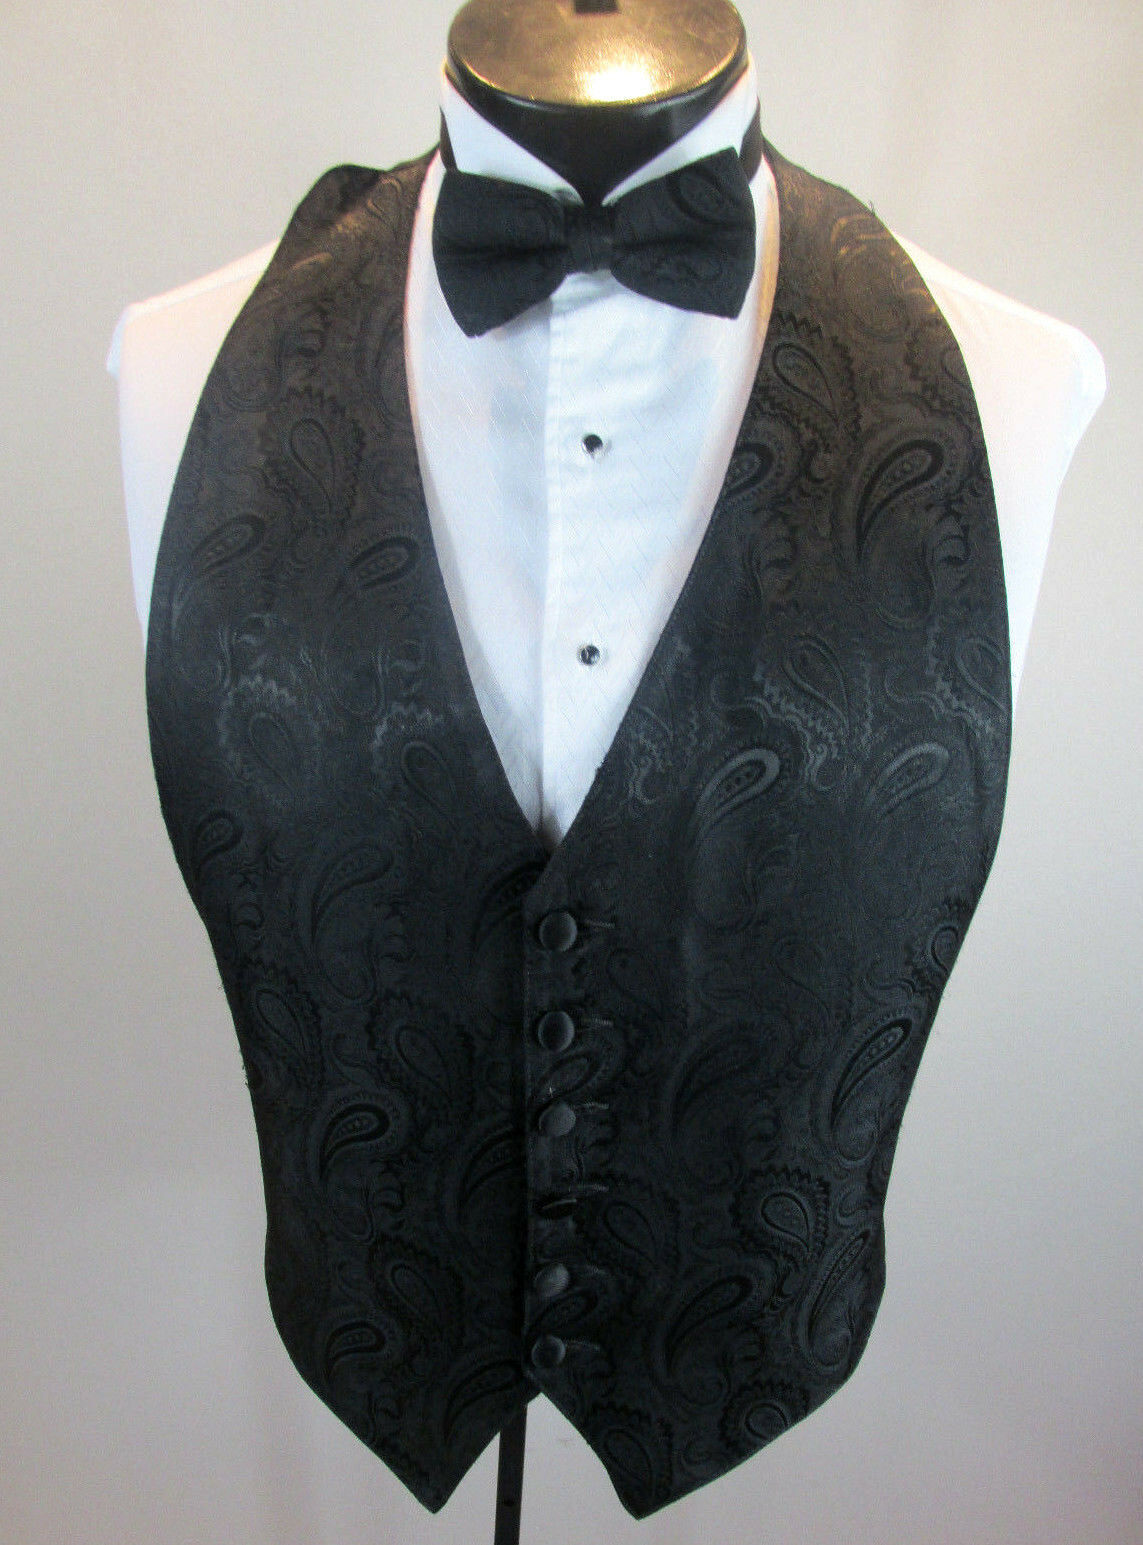 Mens Formal Vest Black Paisley Design Matching Tie Included XL B3